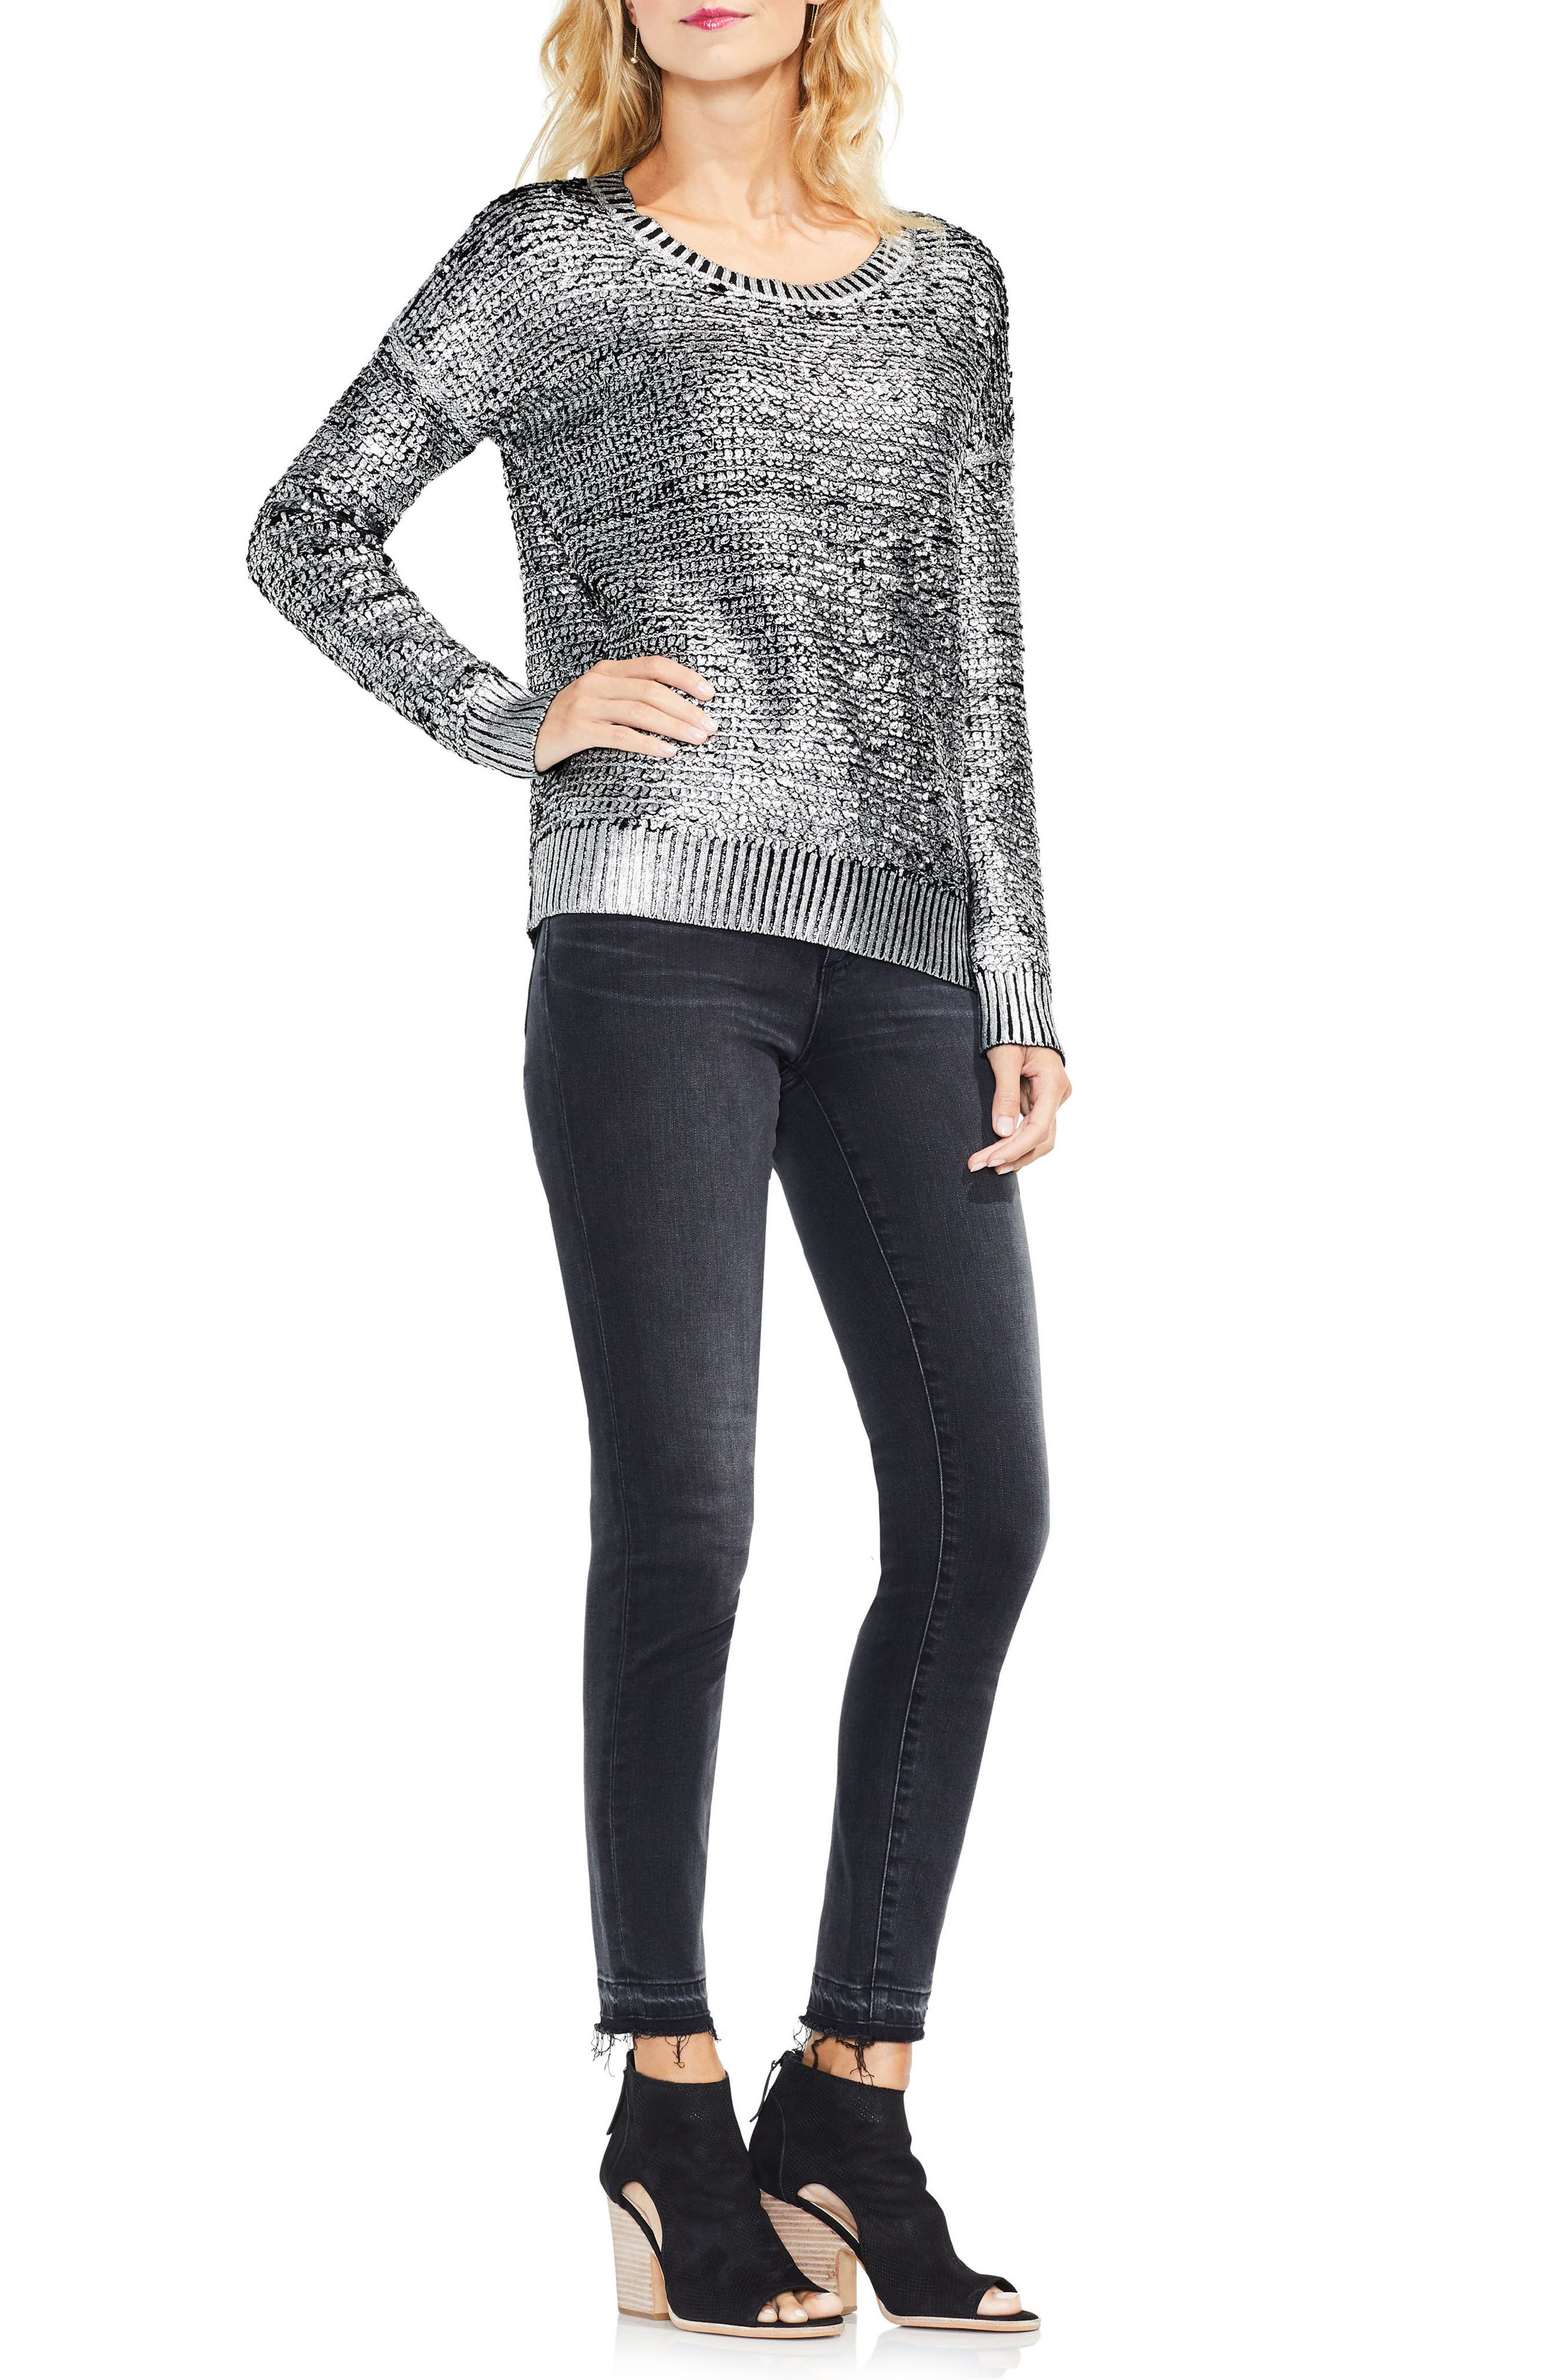 Loop Stitch Foil Print Sweater,                             Alternate thumbnail 3, color,                             006